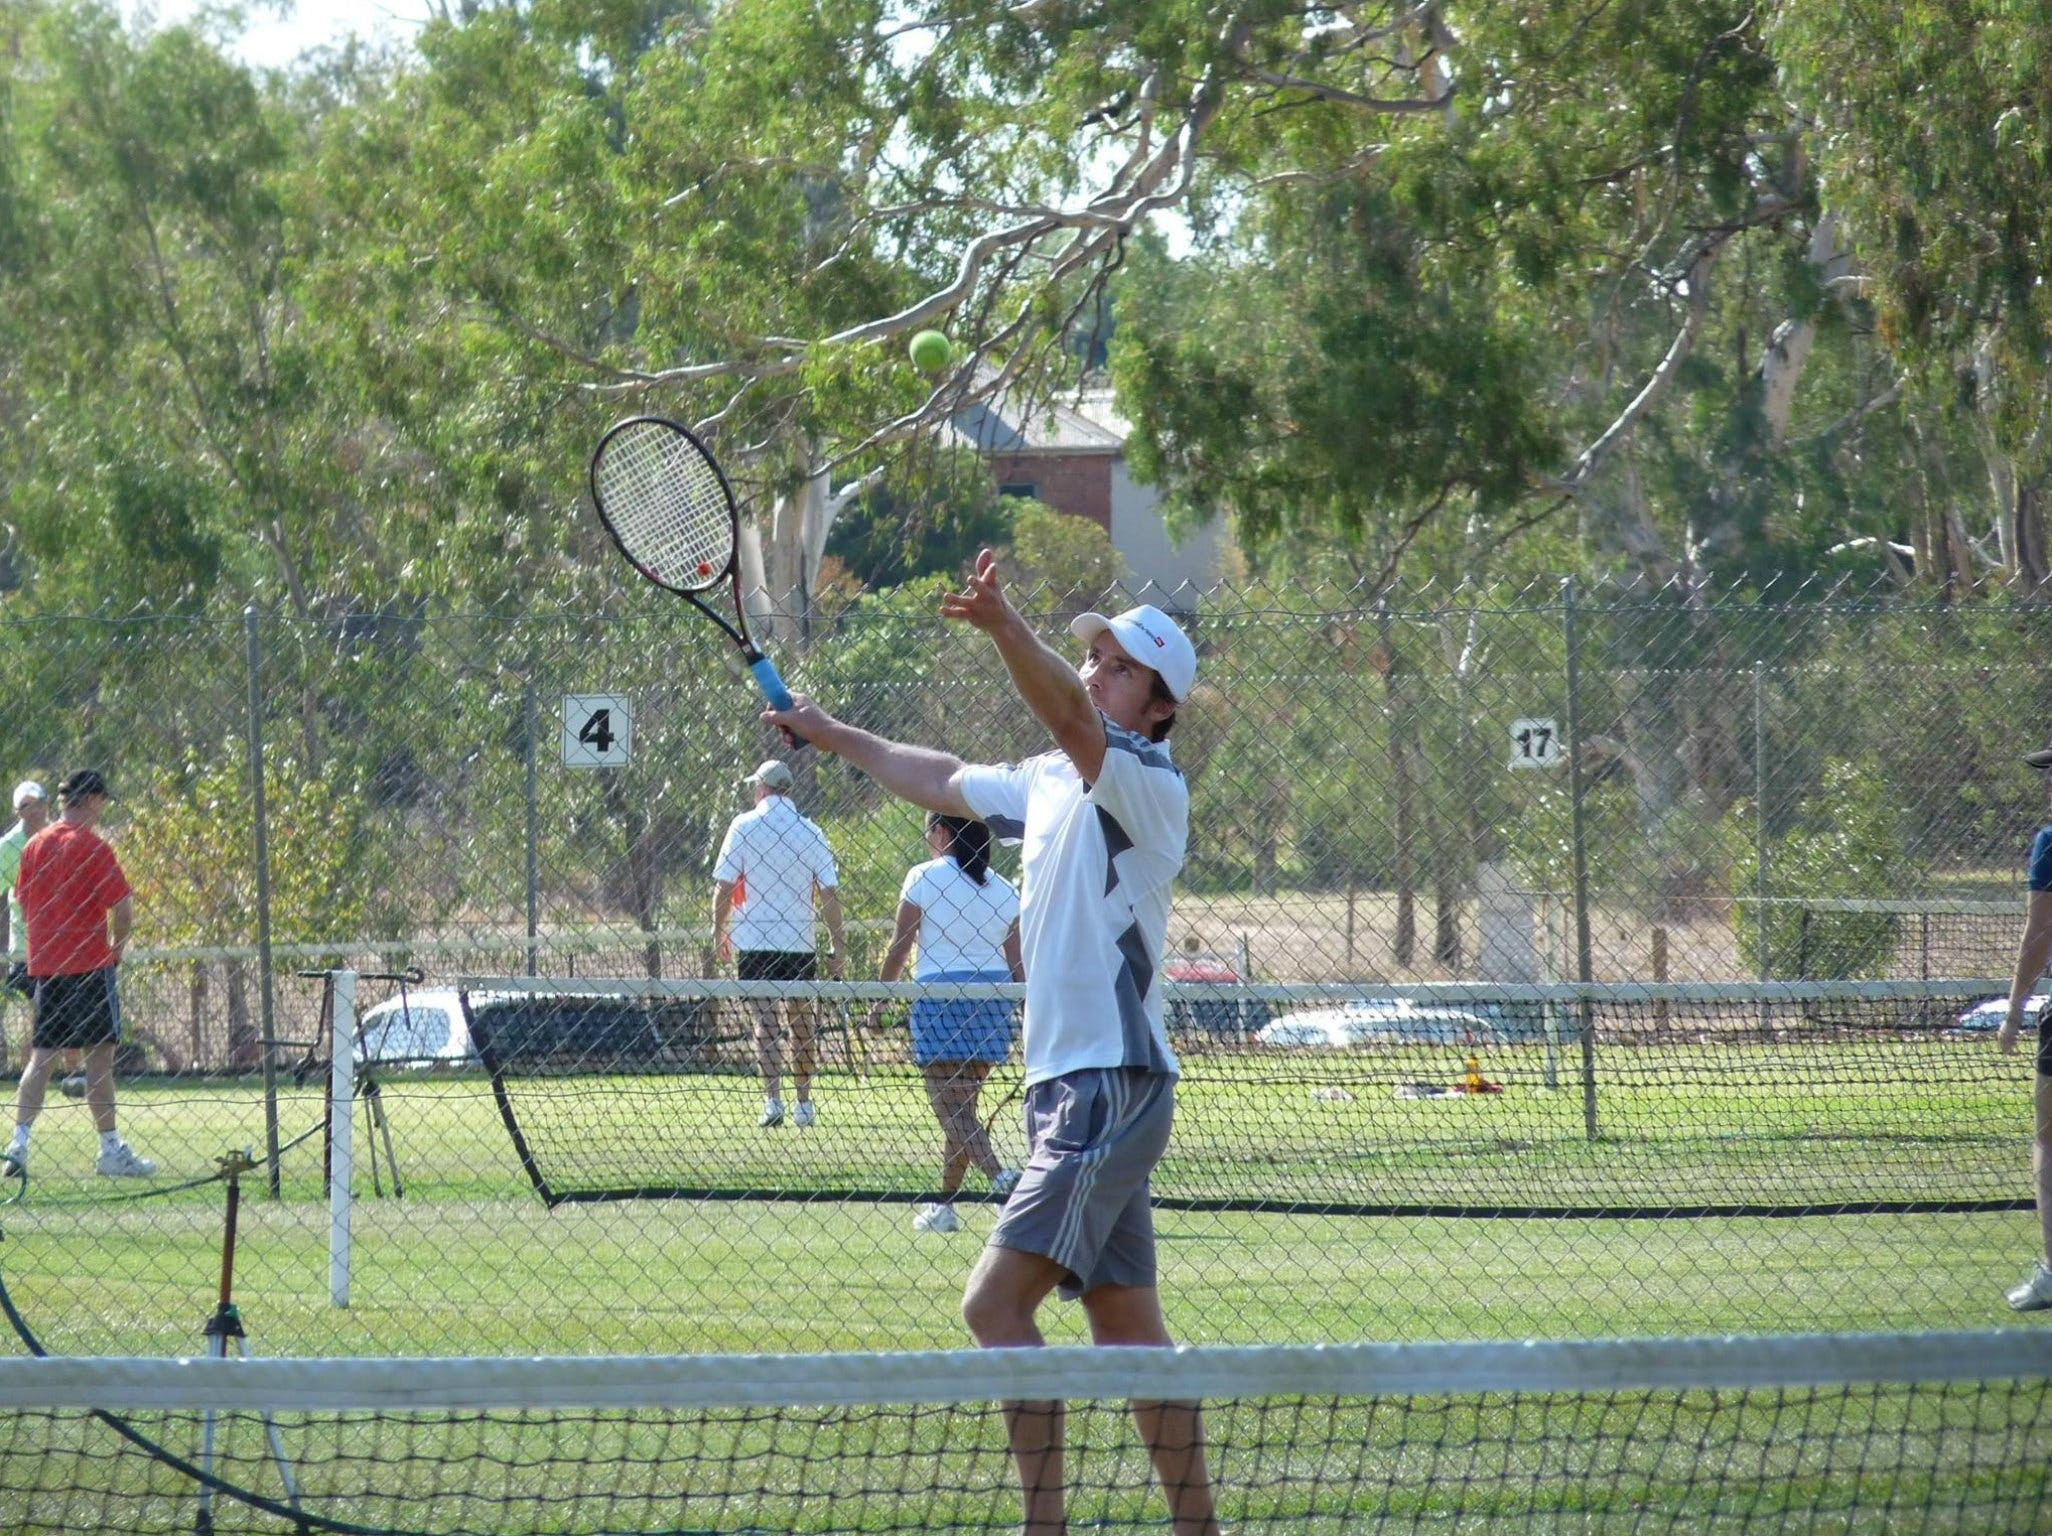 Corowa Easter Lawn Tennis Tournament - Accommodation Great Ocean Road